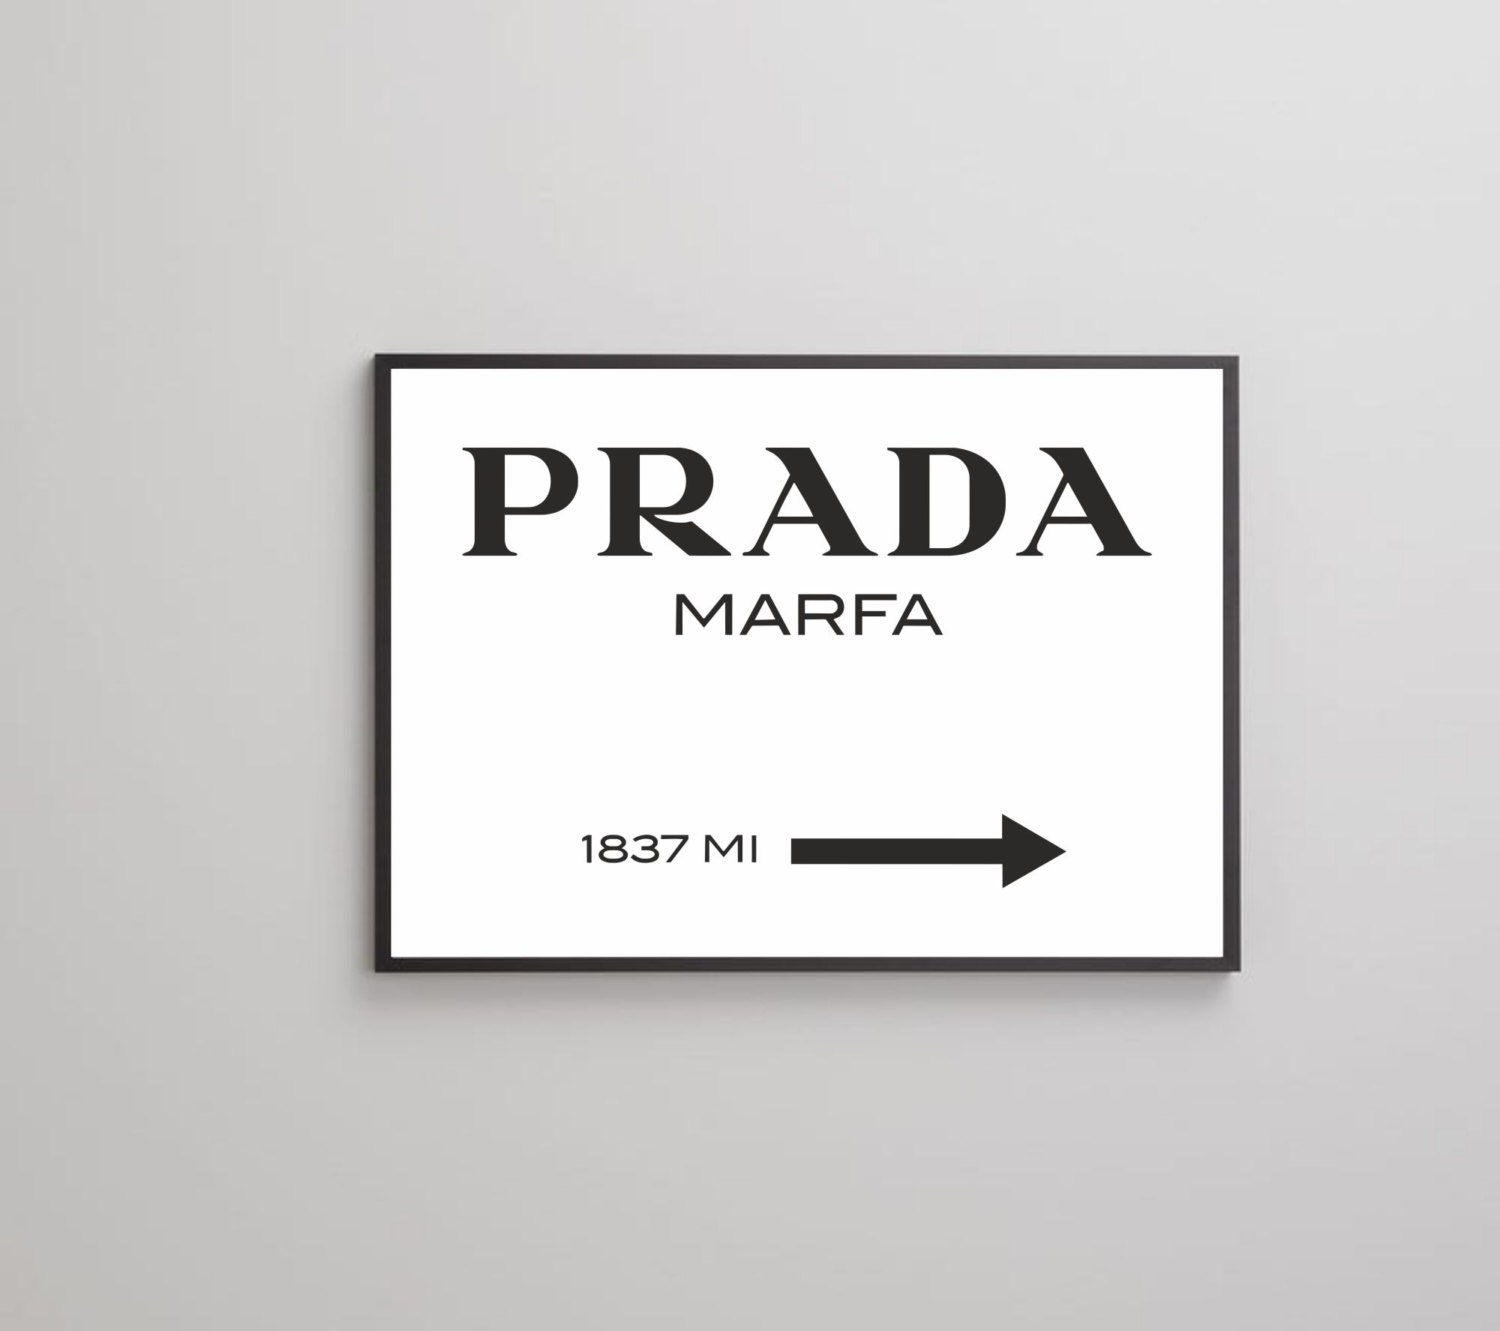 Molto Prada Marfa poster print on paper or canvas up to A0 size HY88